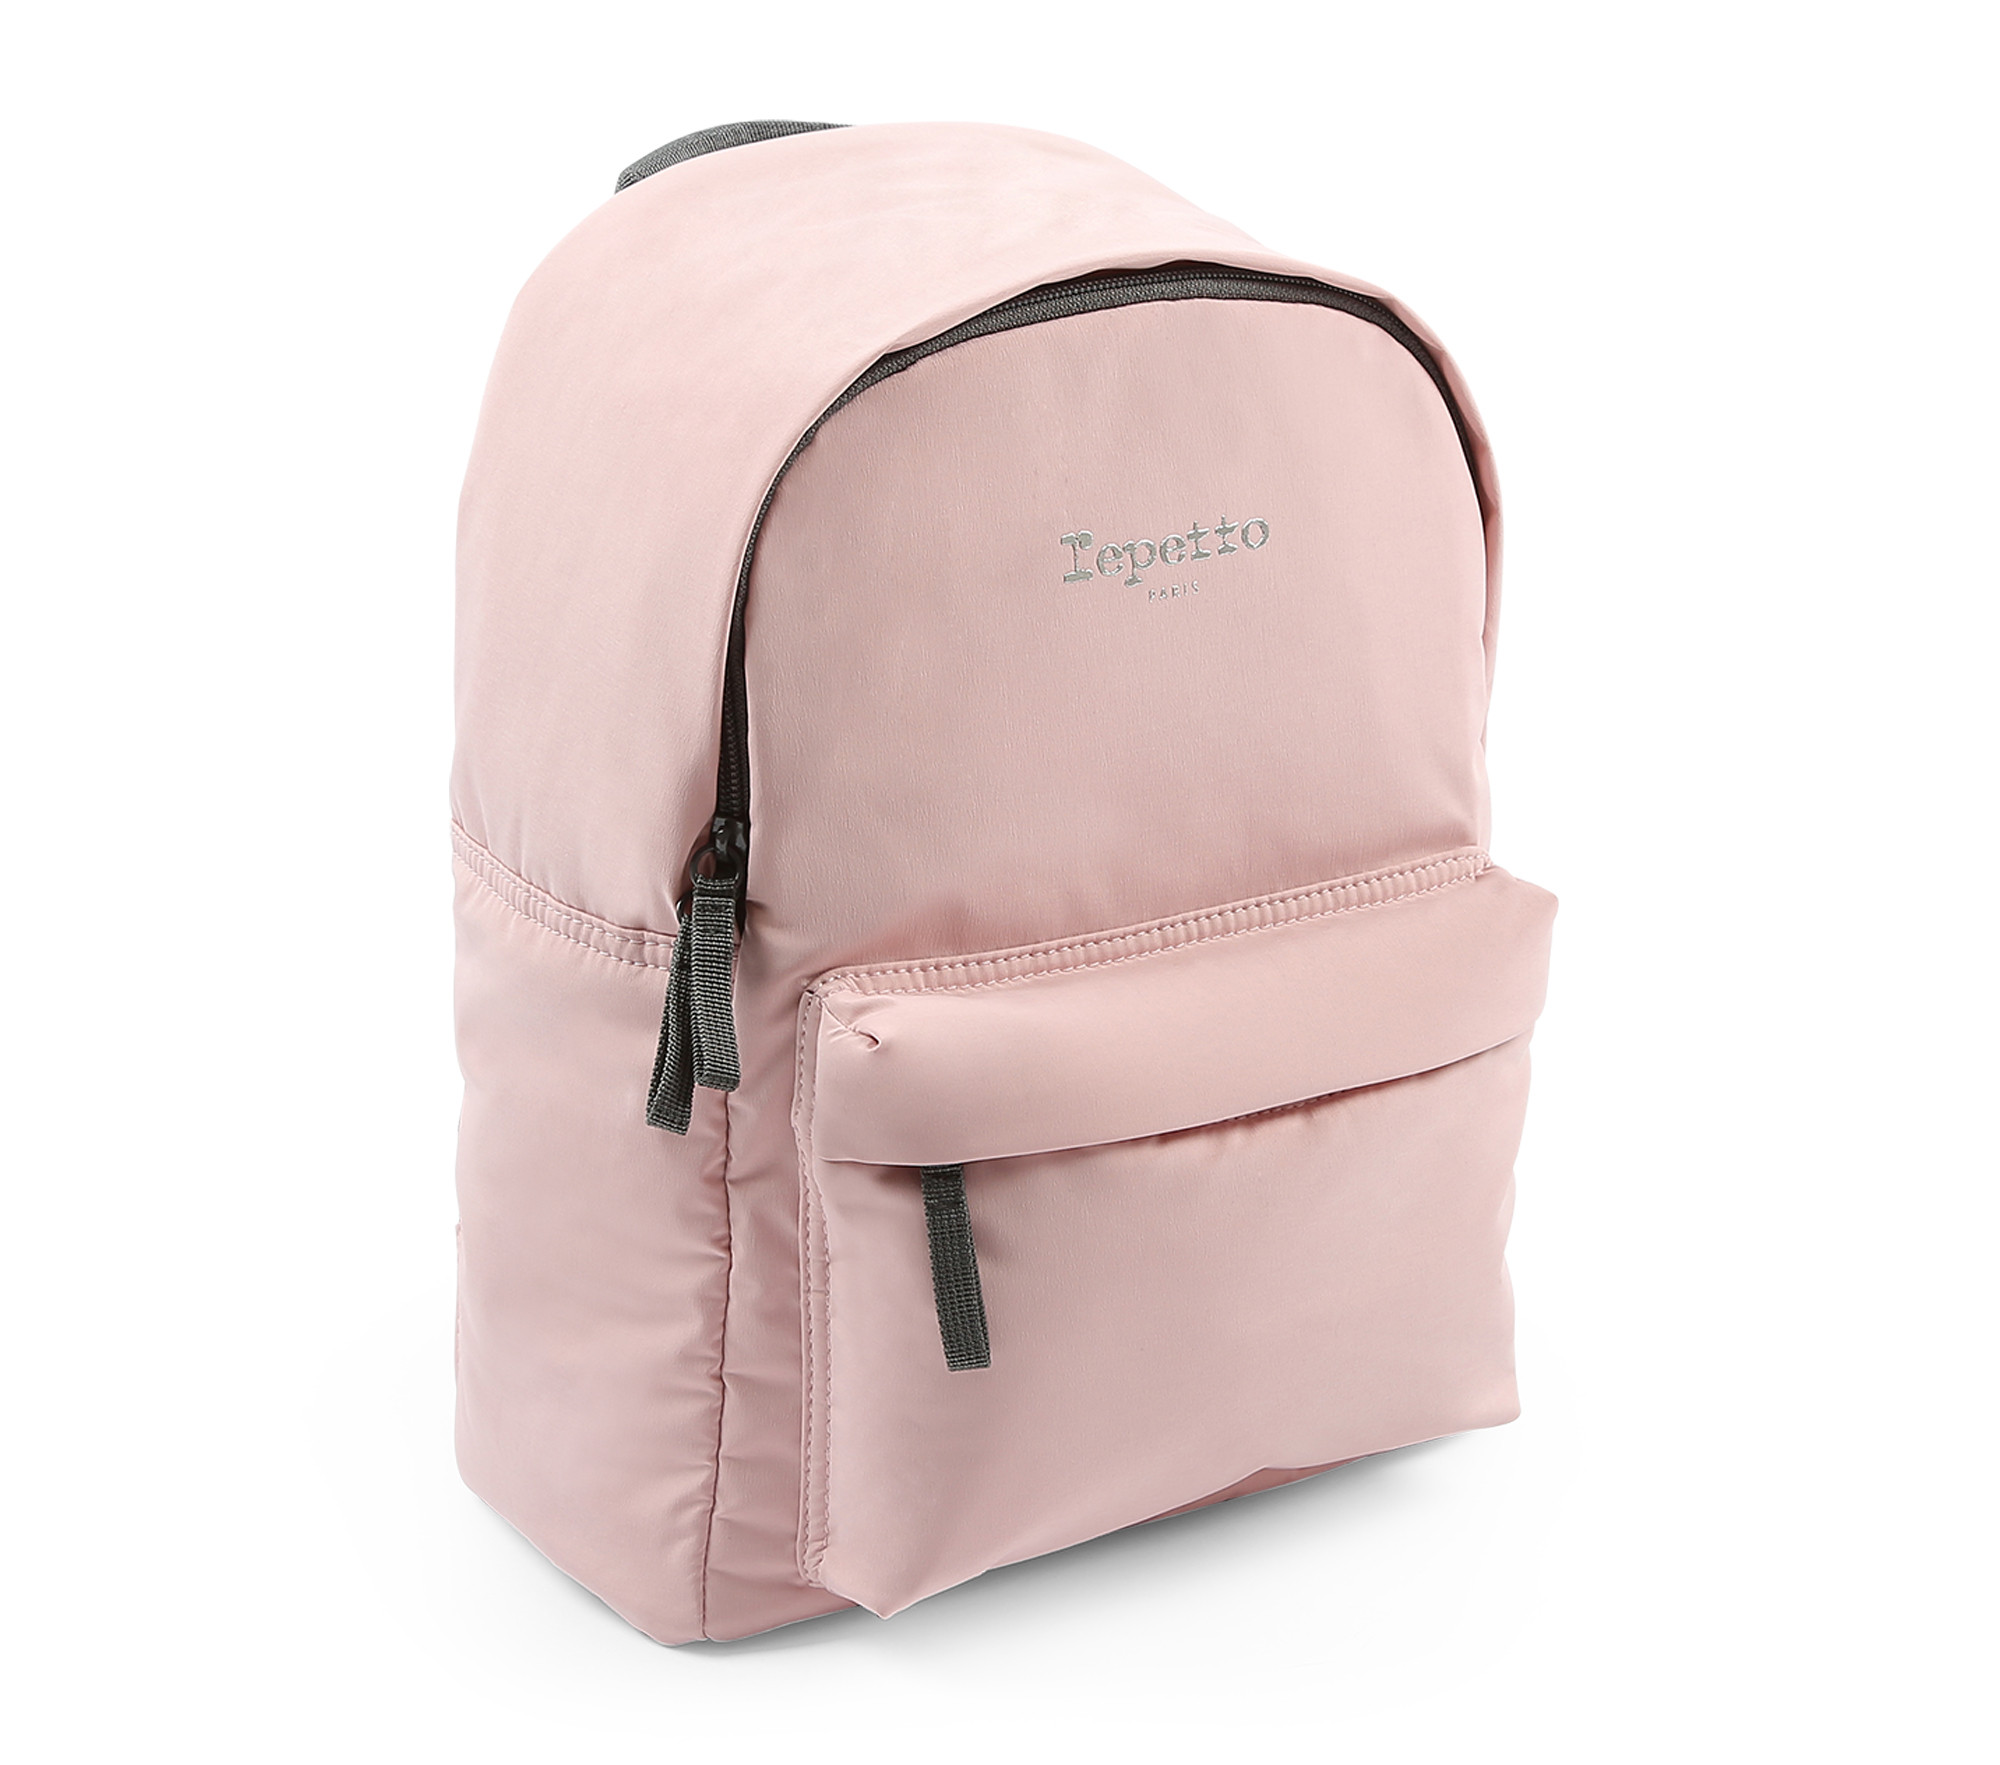 Adagio small backpack